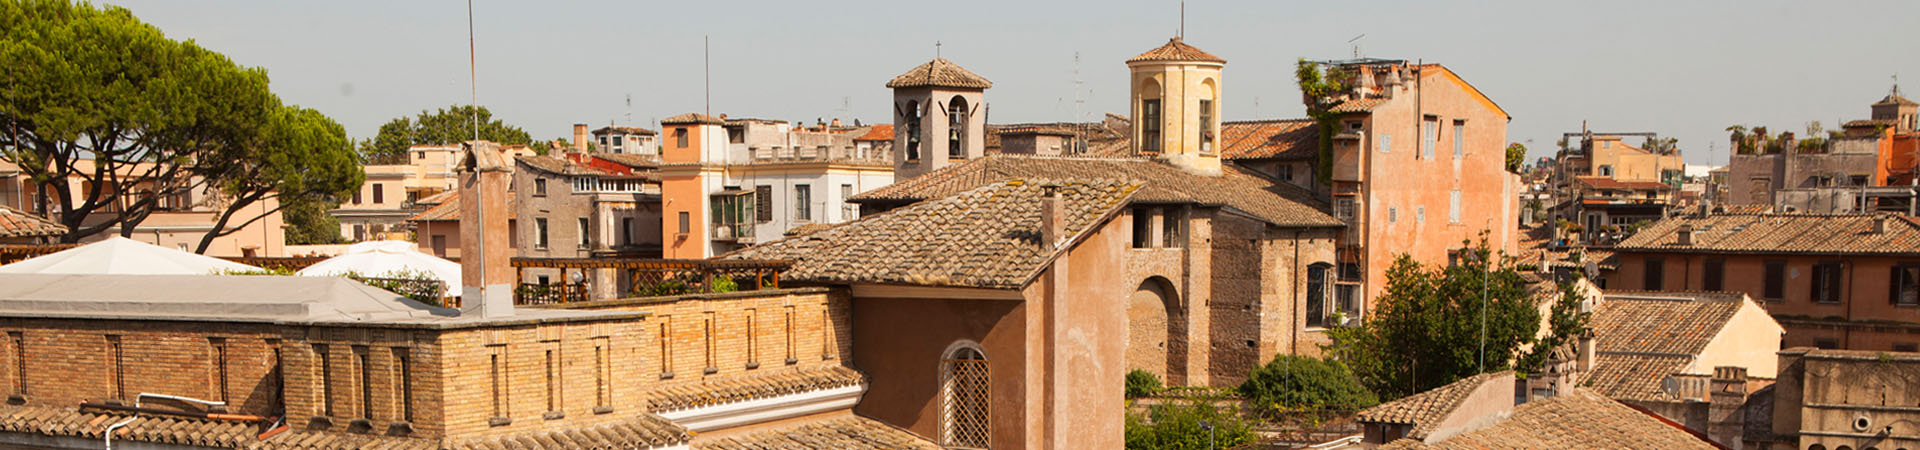 the roofs of Trastevere in Rome